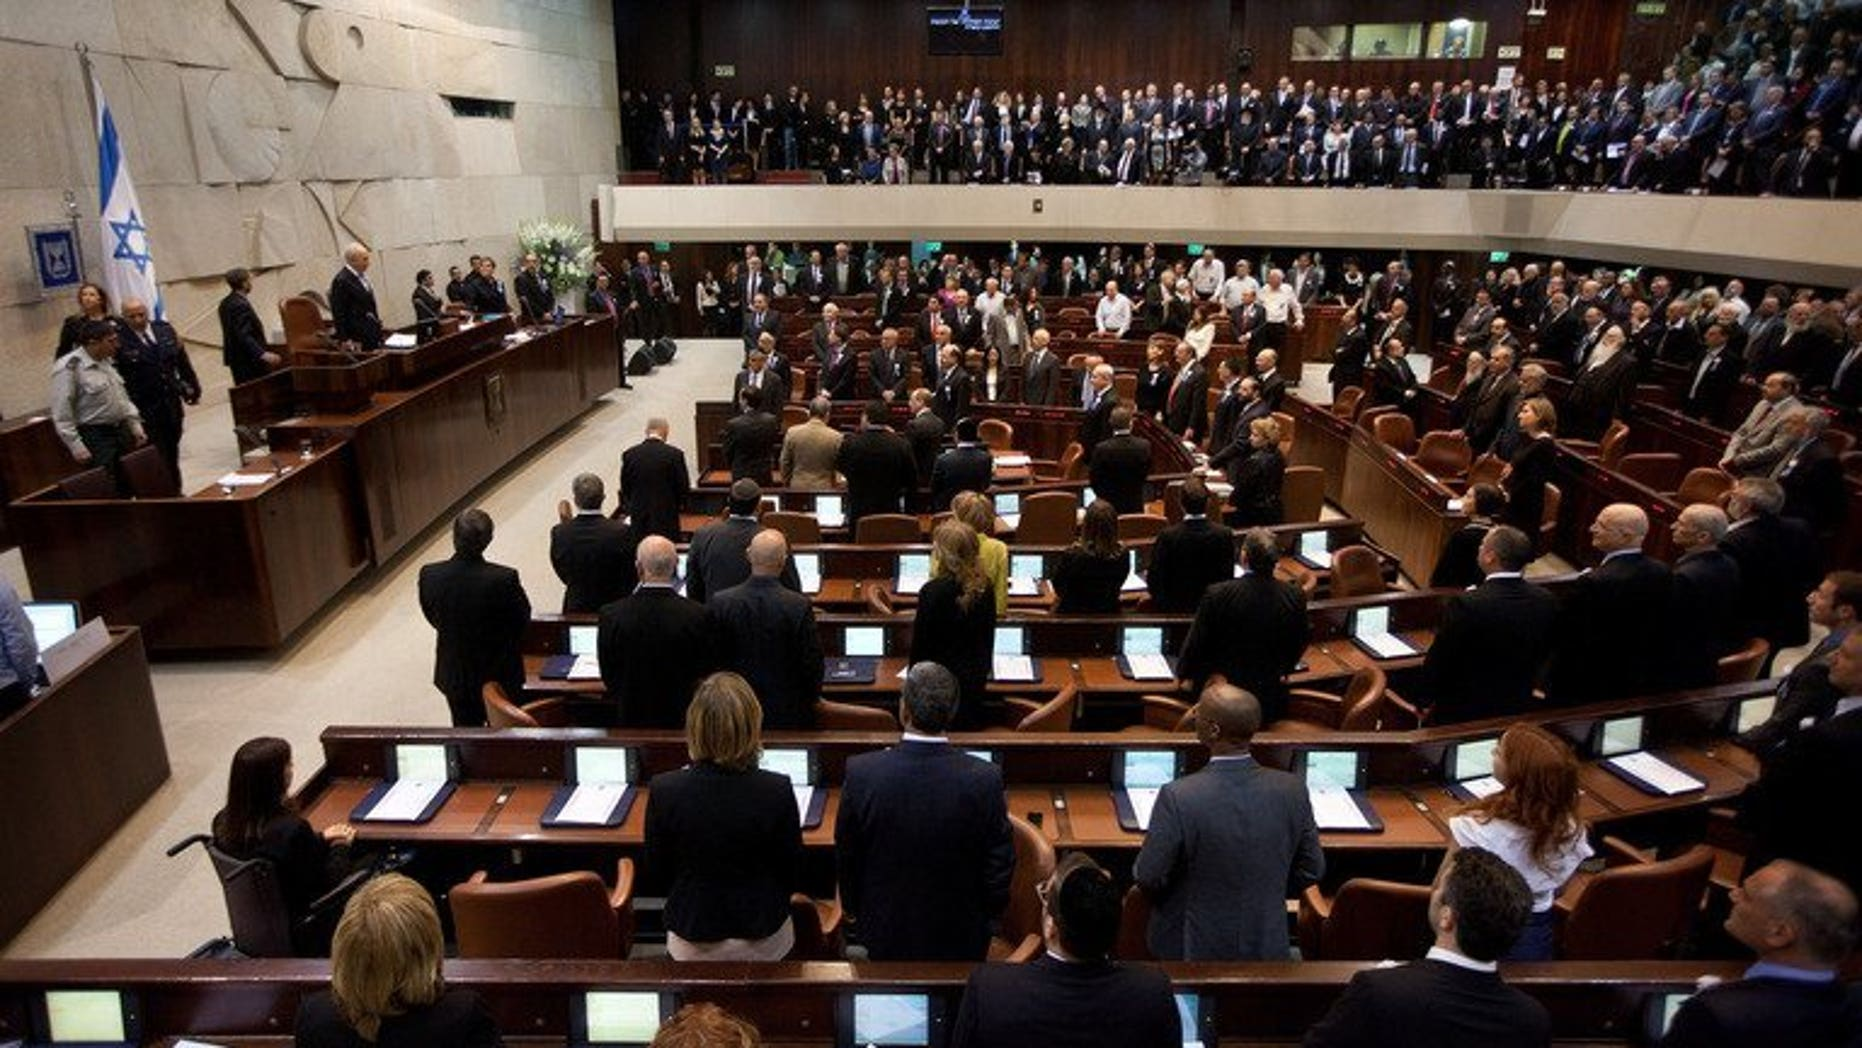 Israeli lawmakers stand during a swearing-in ceremony at the Knesset in Jerusalem, on February 5, 2013. Israel's parliament has taken the first tentative steps towards reining in the country's extreme form of proportional representation in a bid to make governments more stable.